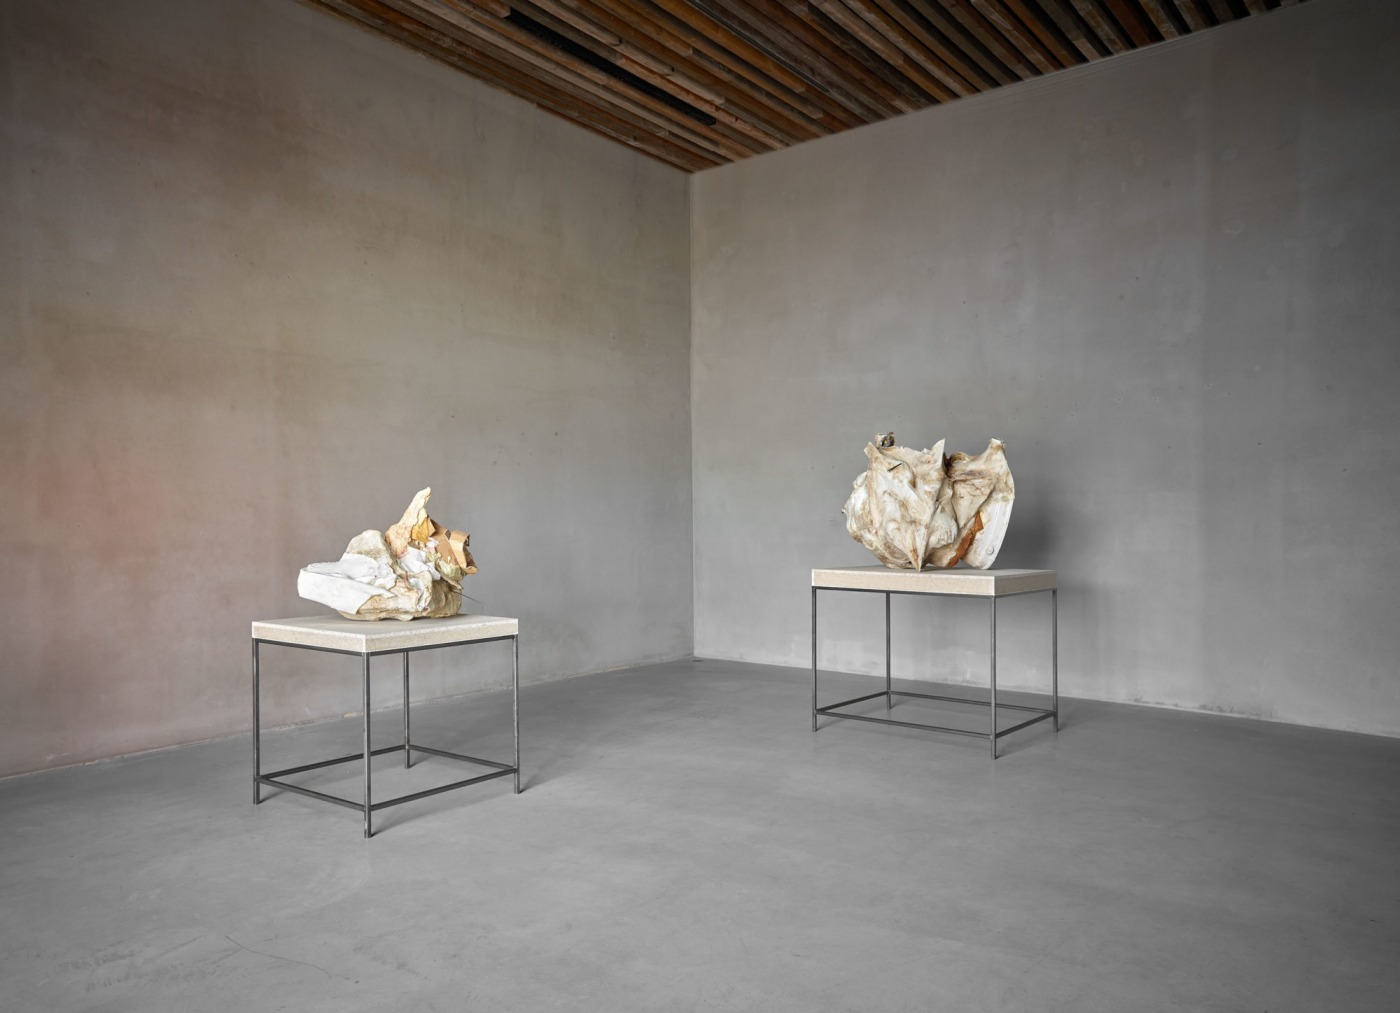 Axel Vervoordt Investigation of materiality 3